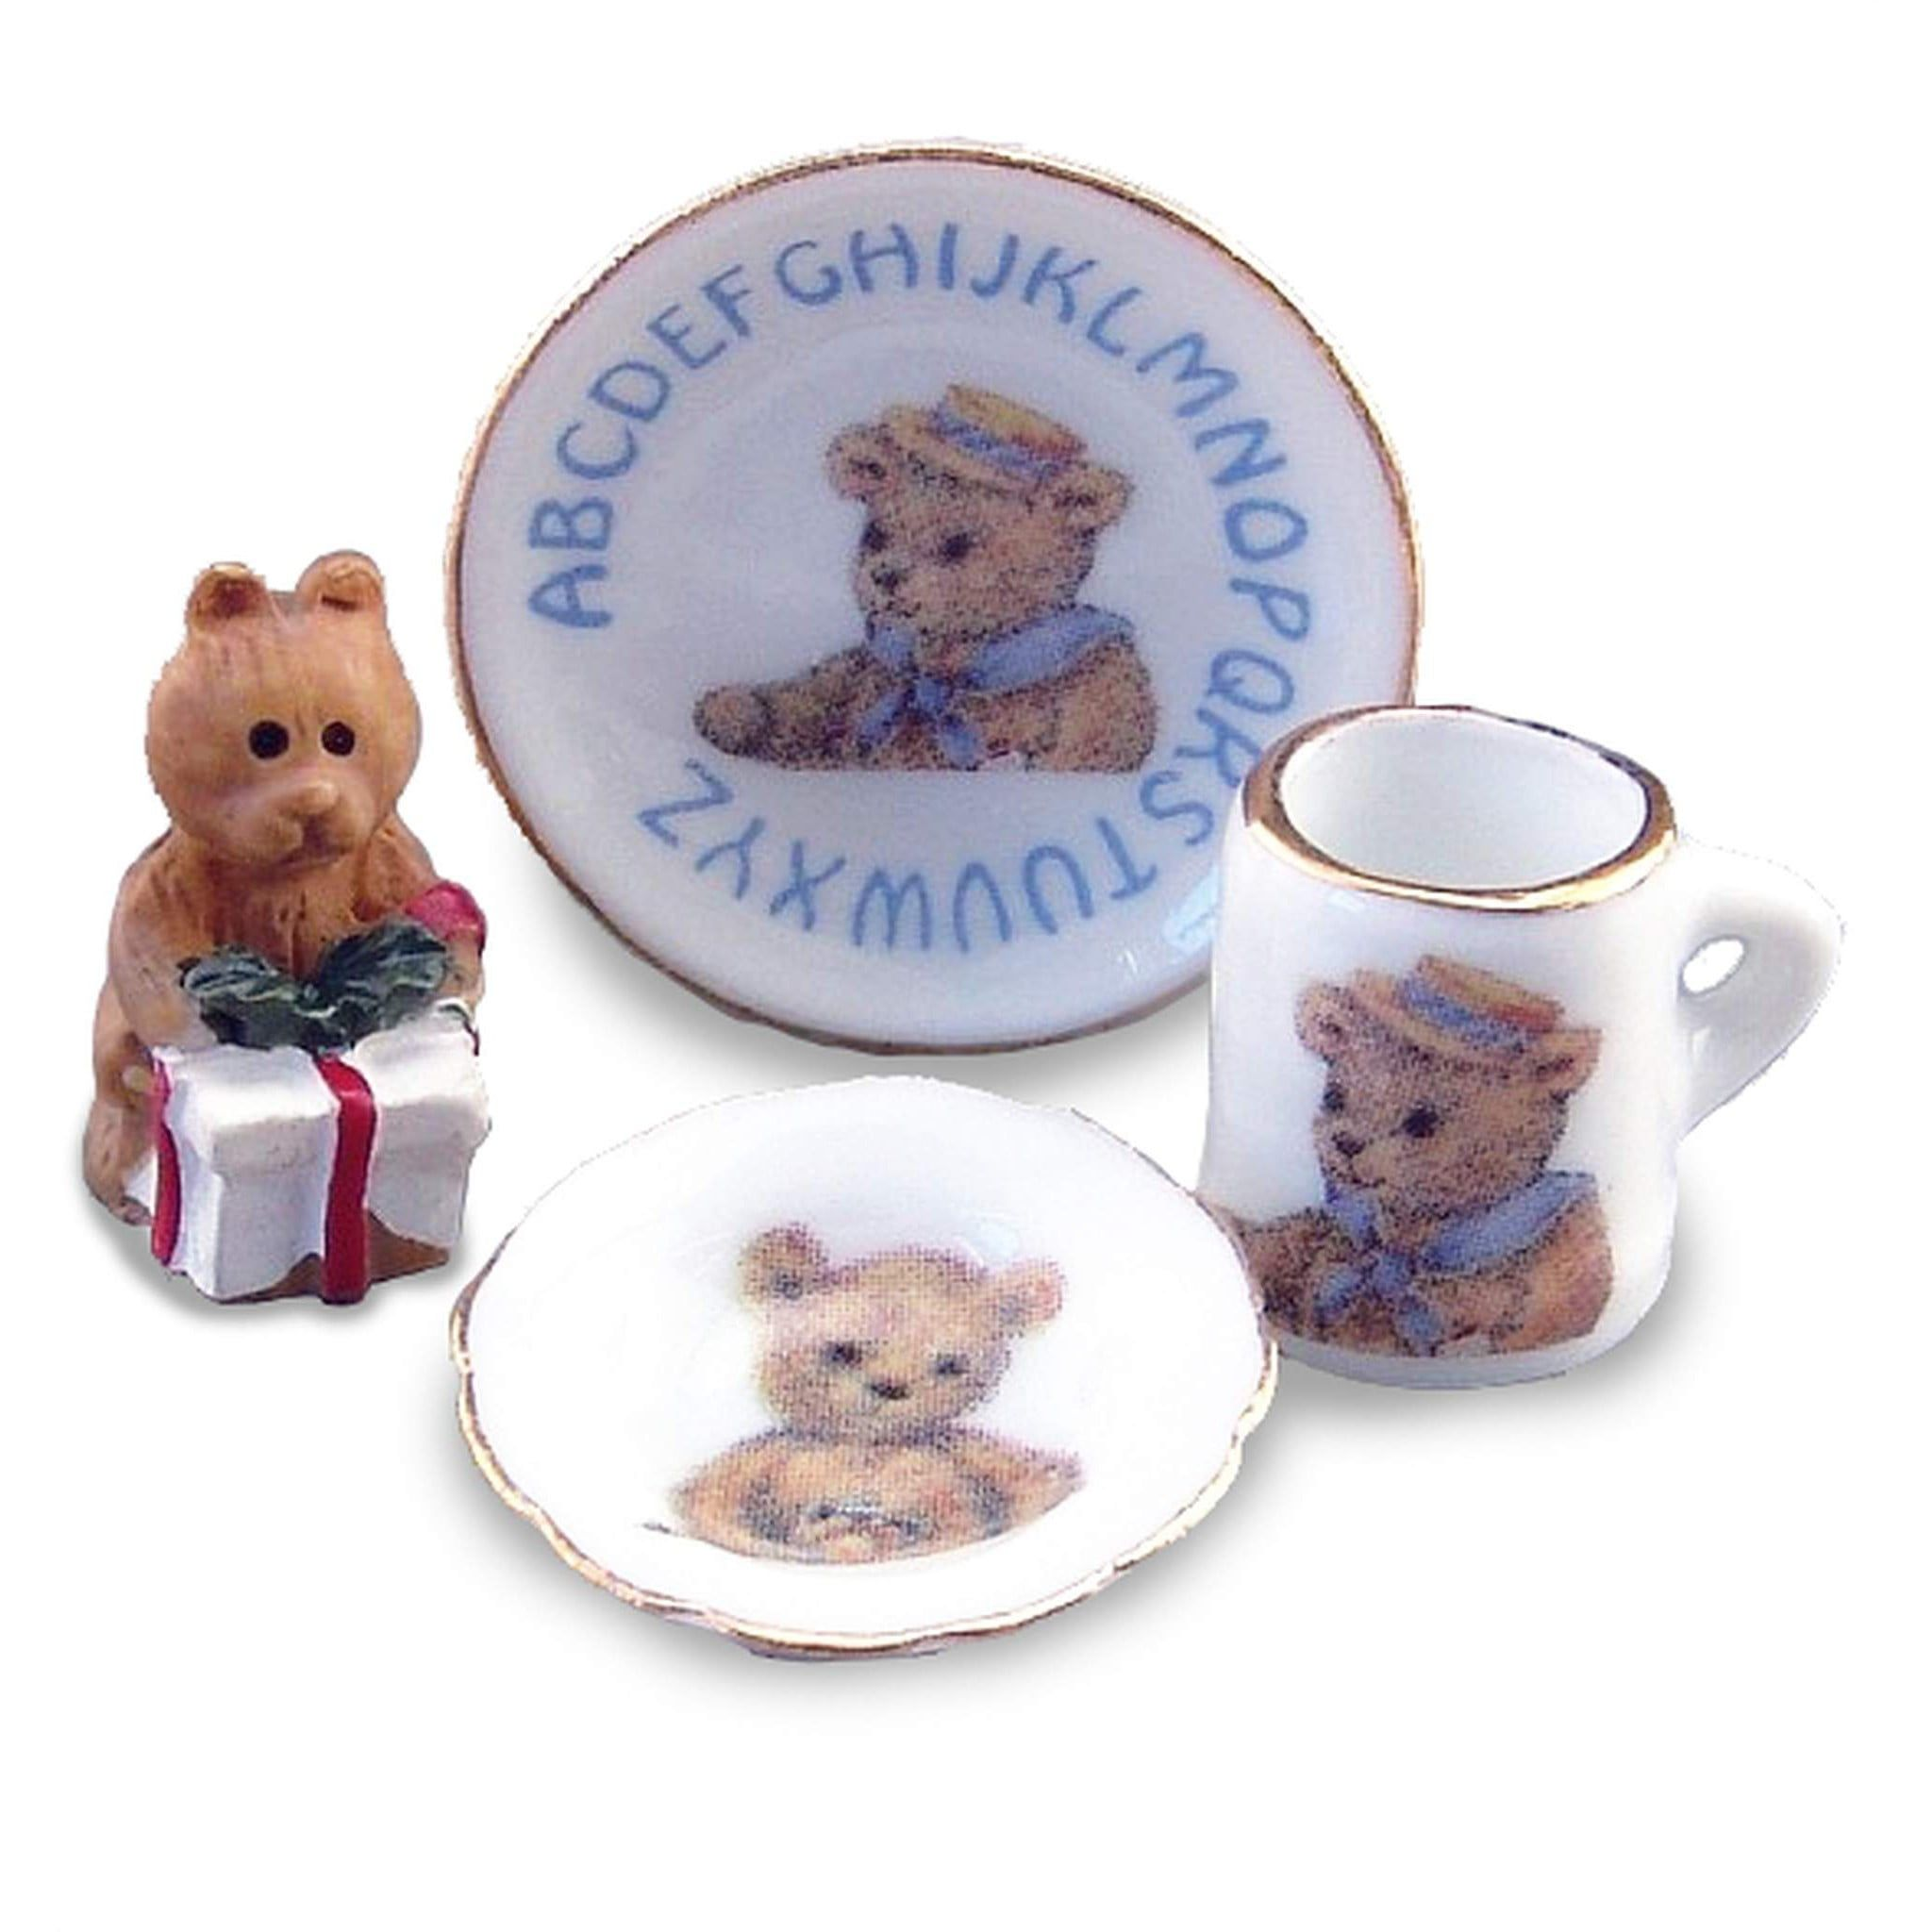 Reutter Porcelain ABC Breakfast Set